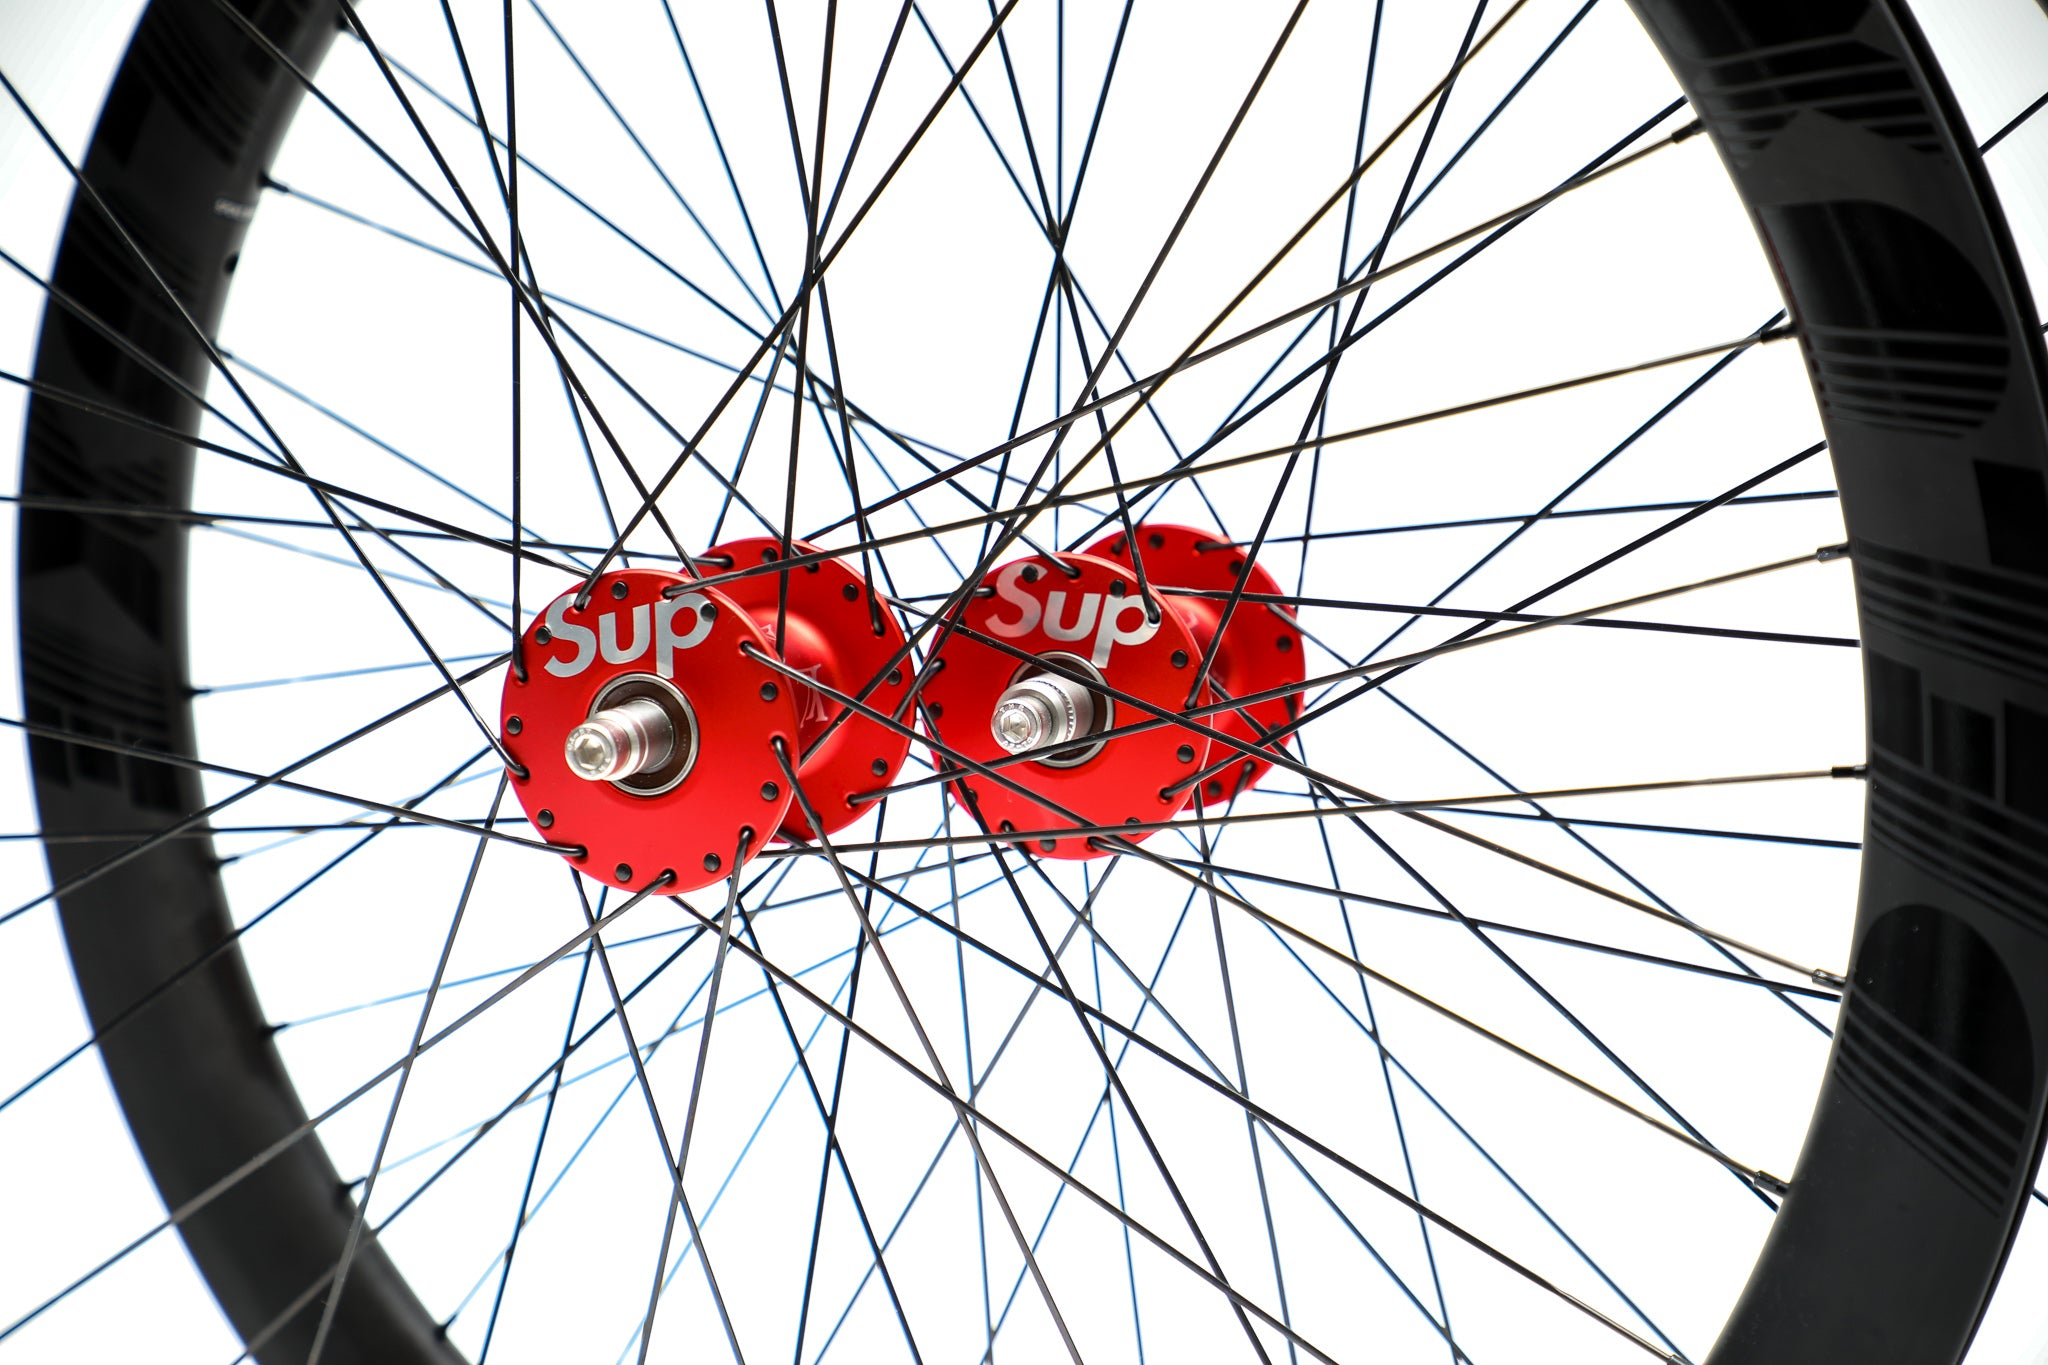 Deluxe LV SUP Carbon Wheels